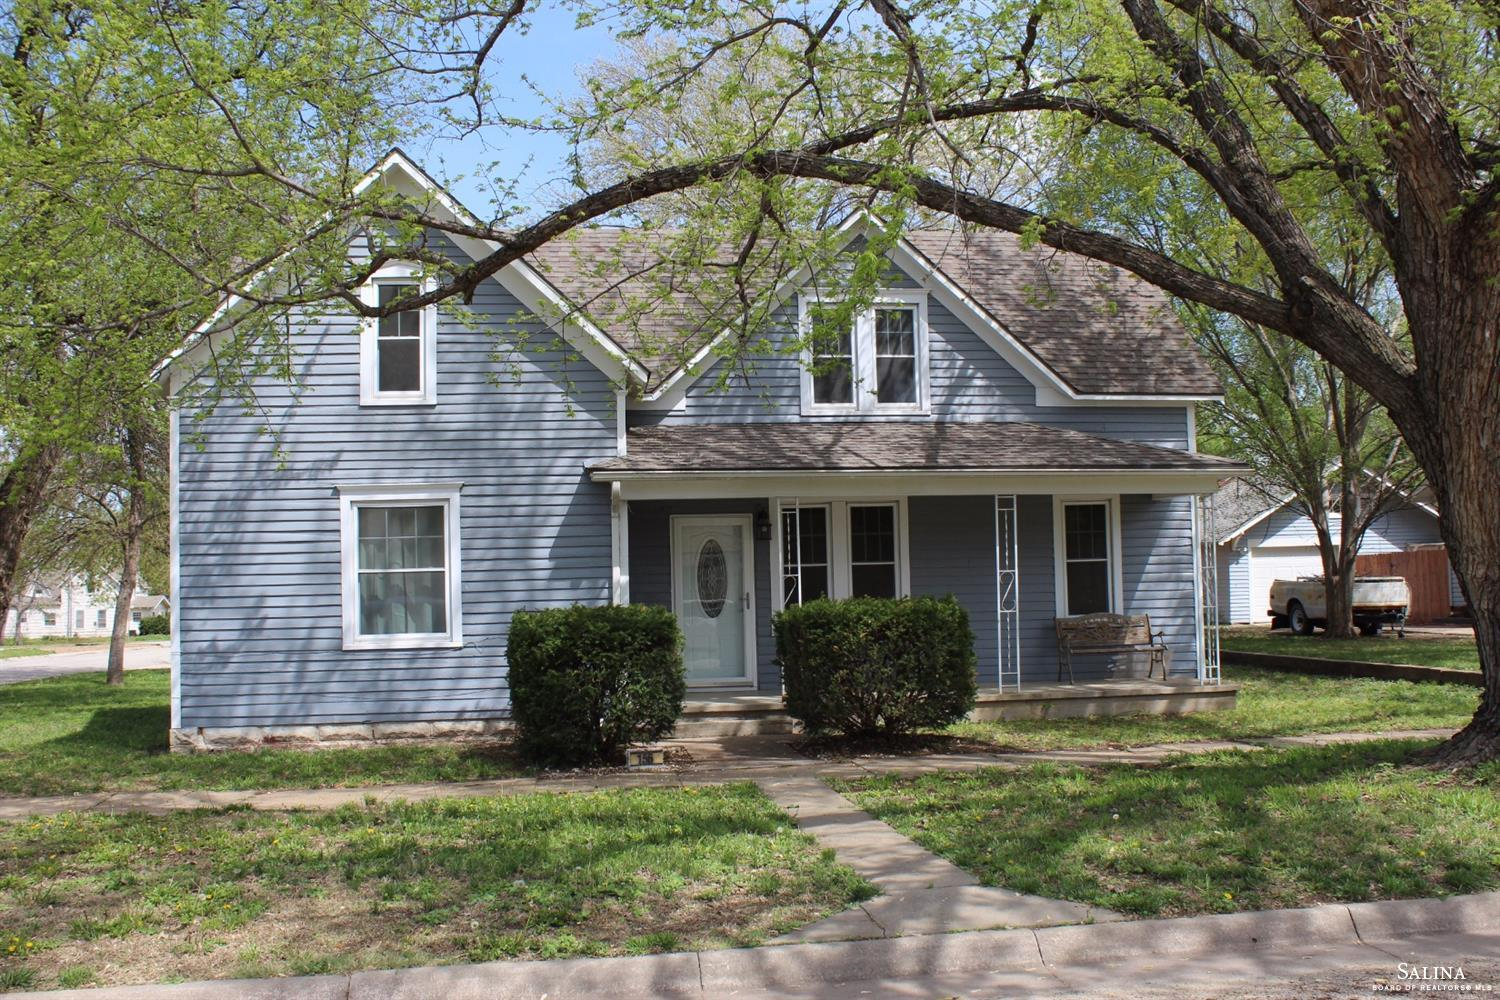 156 W 4th Street, Assaria, KS 67416